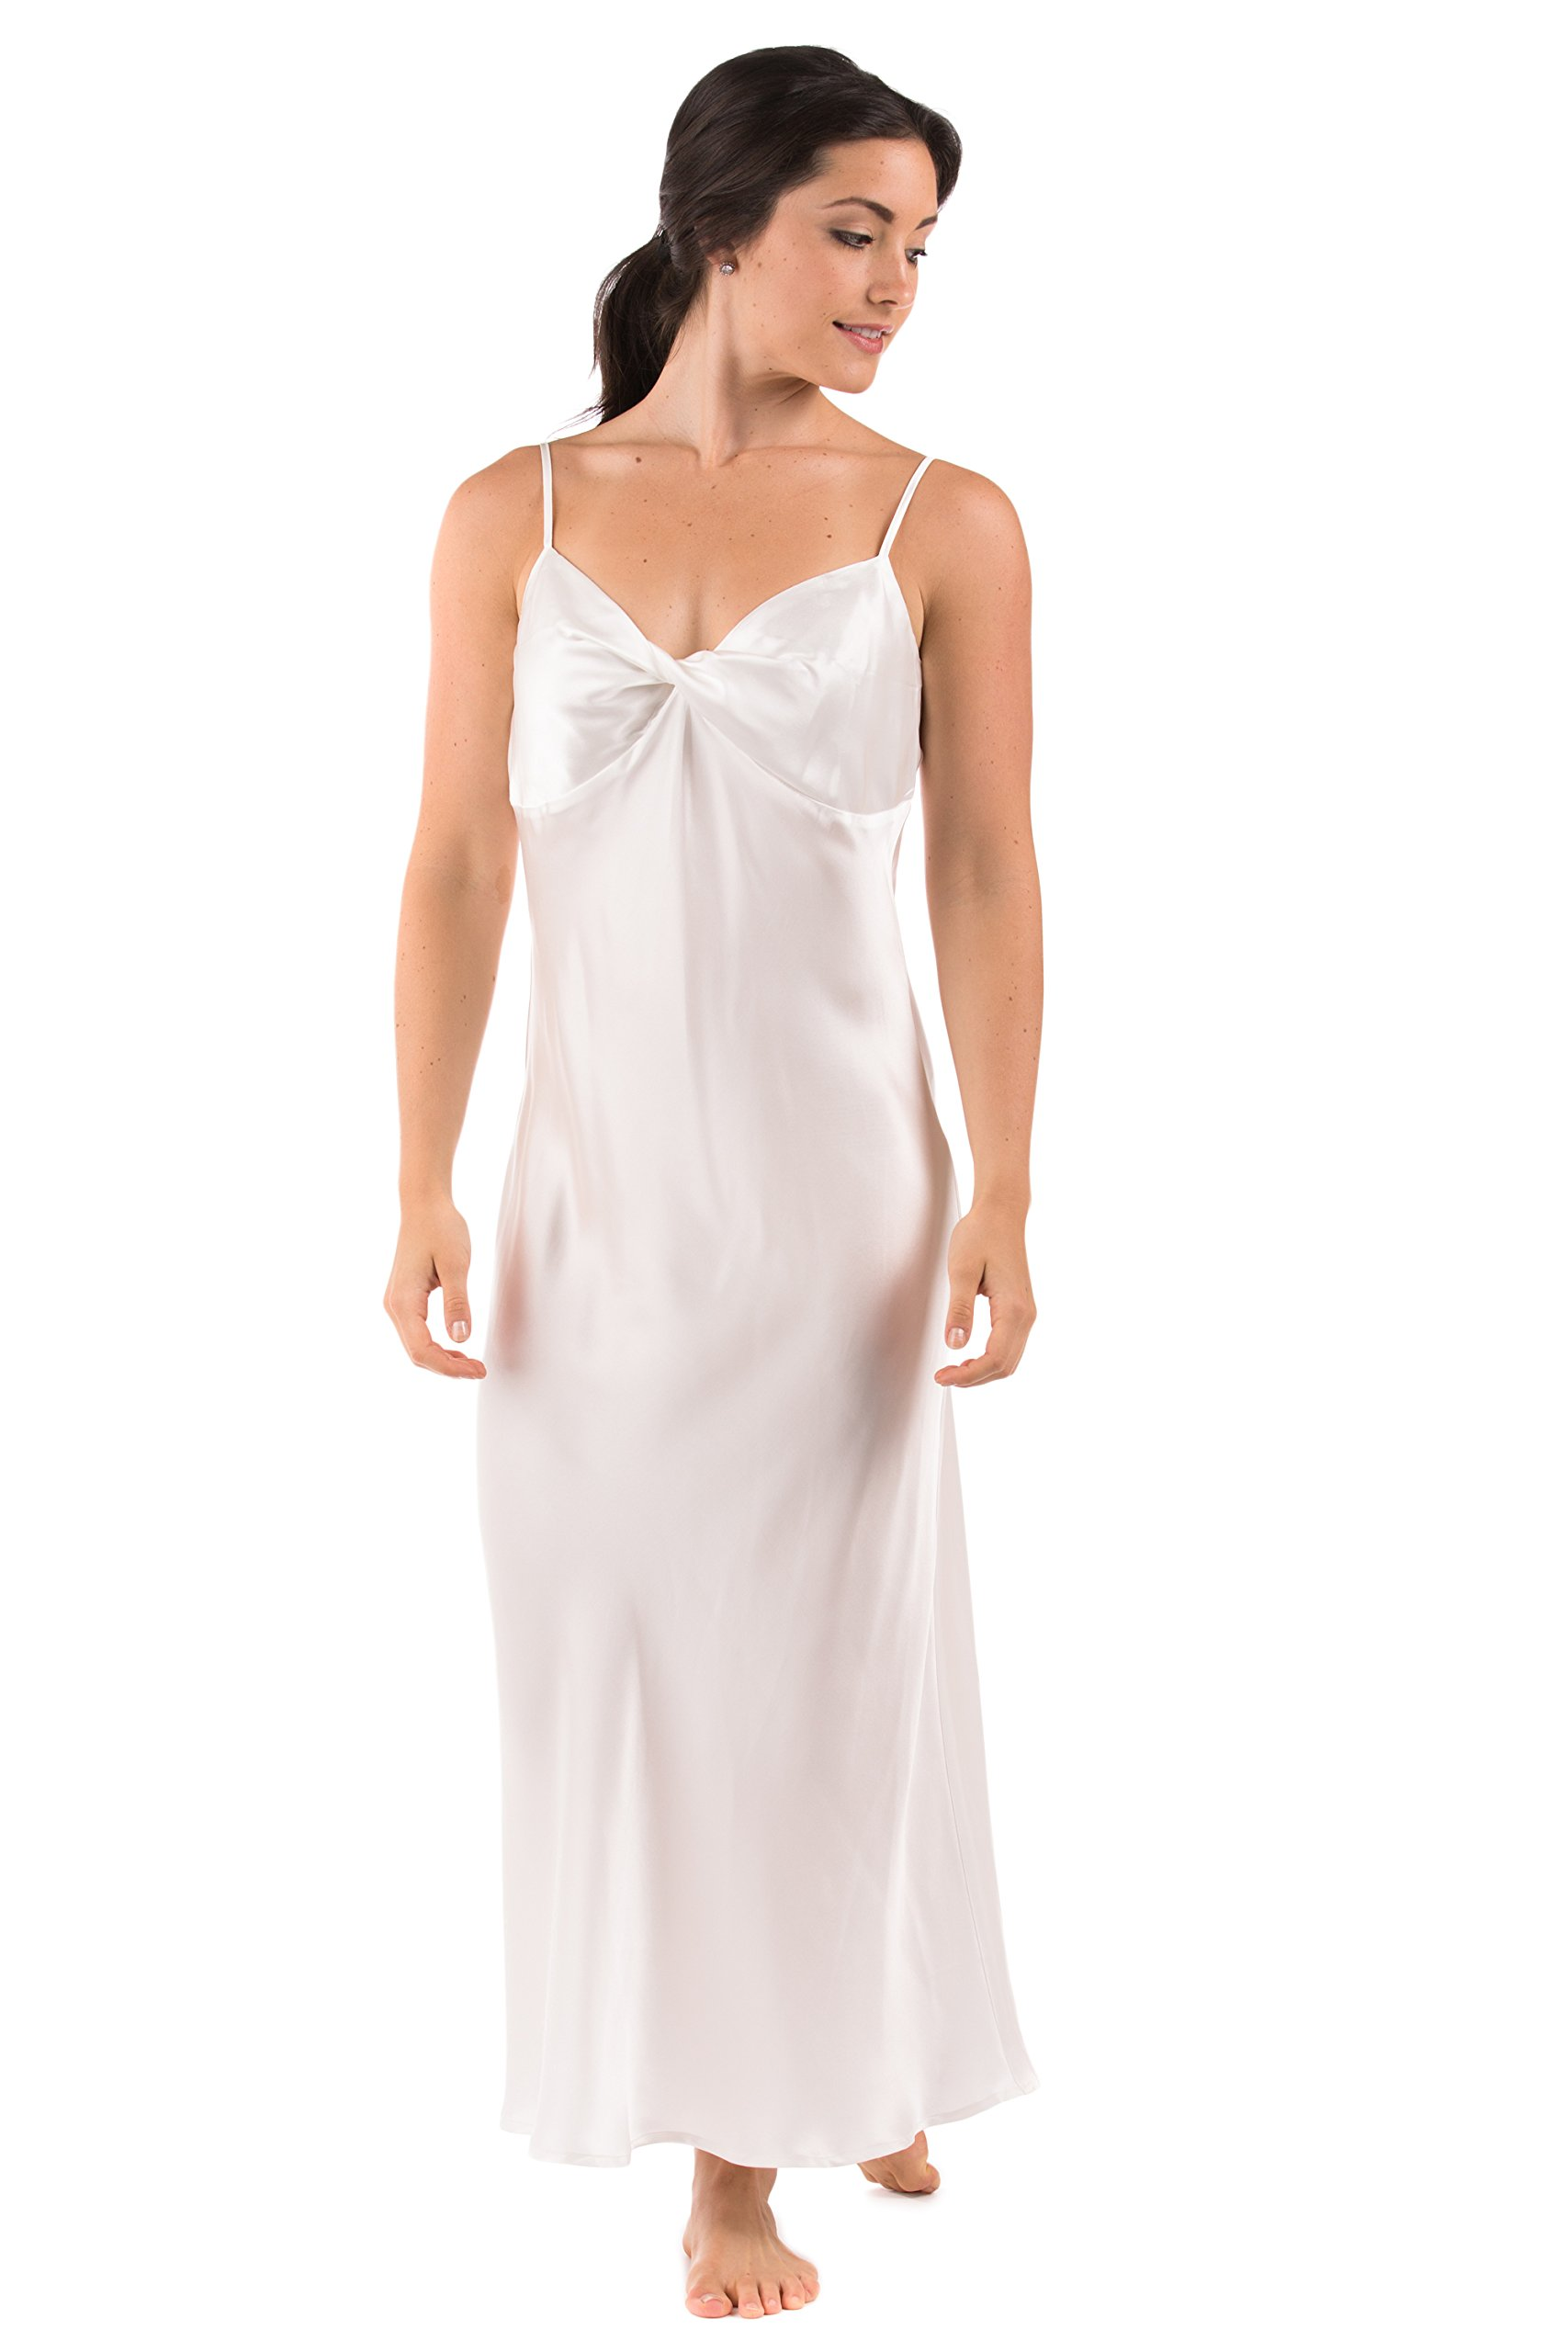 TexereSilk Women's Long Silk Nightgown (Natural White, Large) Luxury Beautiful Sleepwear Gifts for Her WS0401-NWH-L